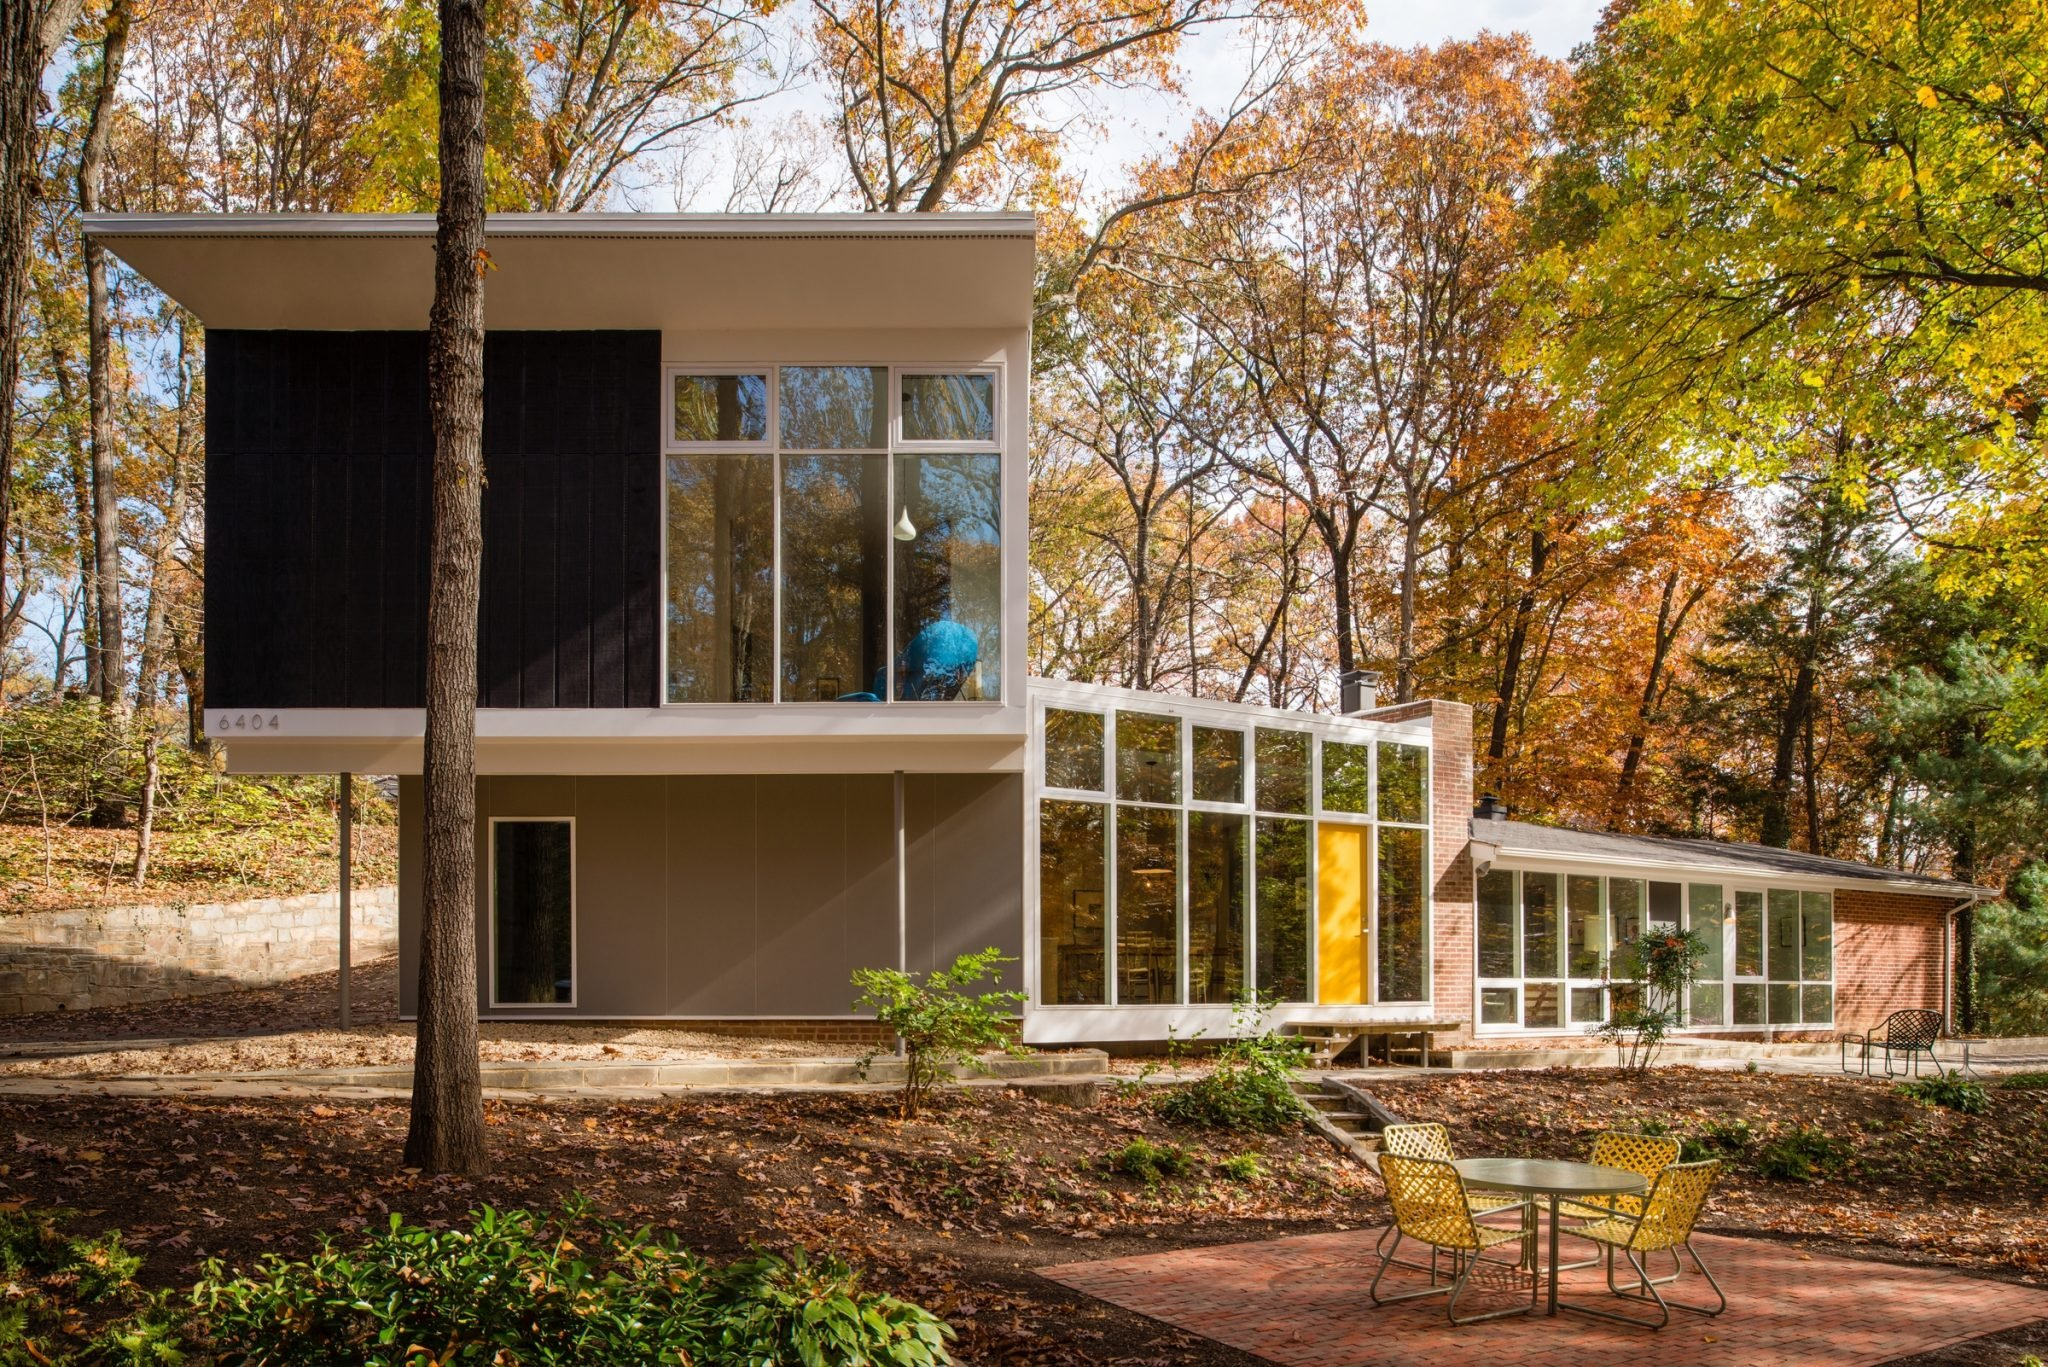 Before and After: This Midcentury Modern Masterpiece Underwent a Shocking Transformation